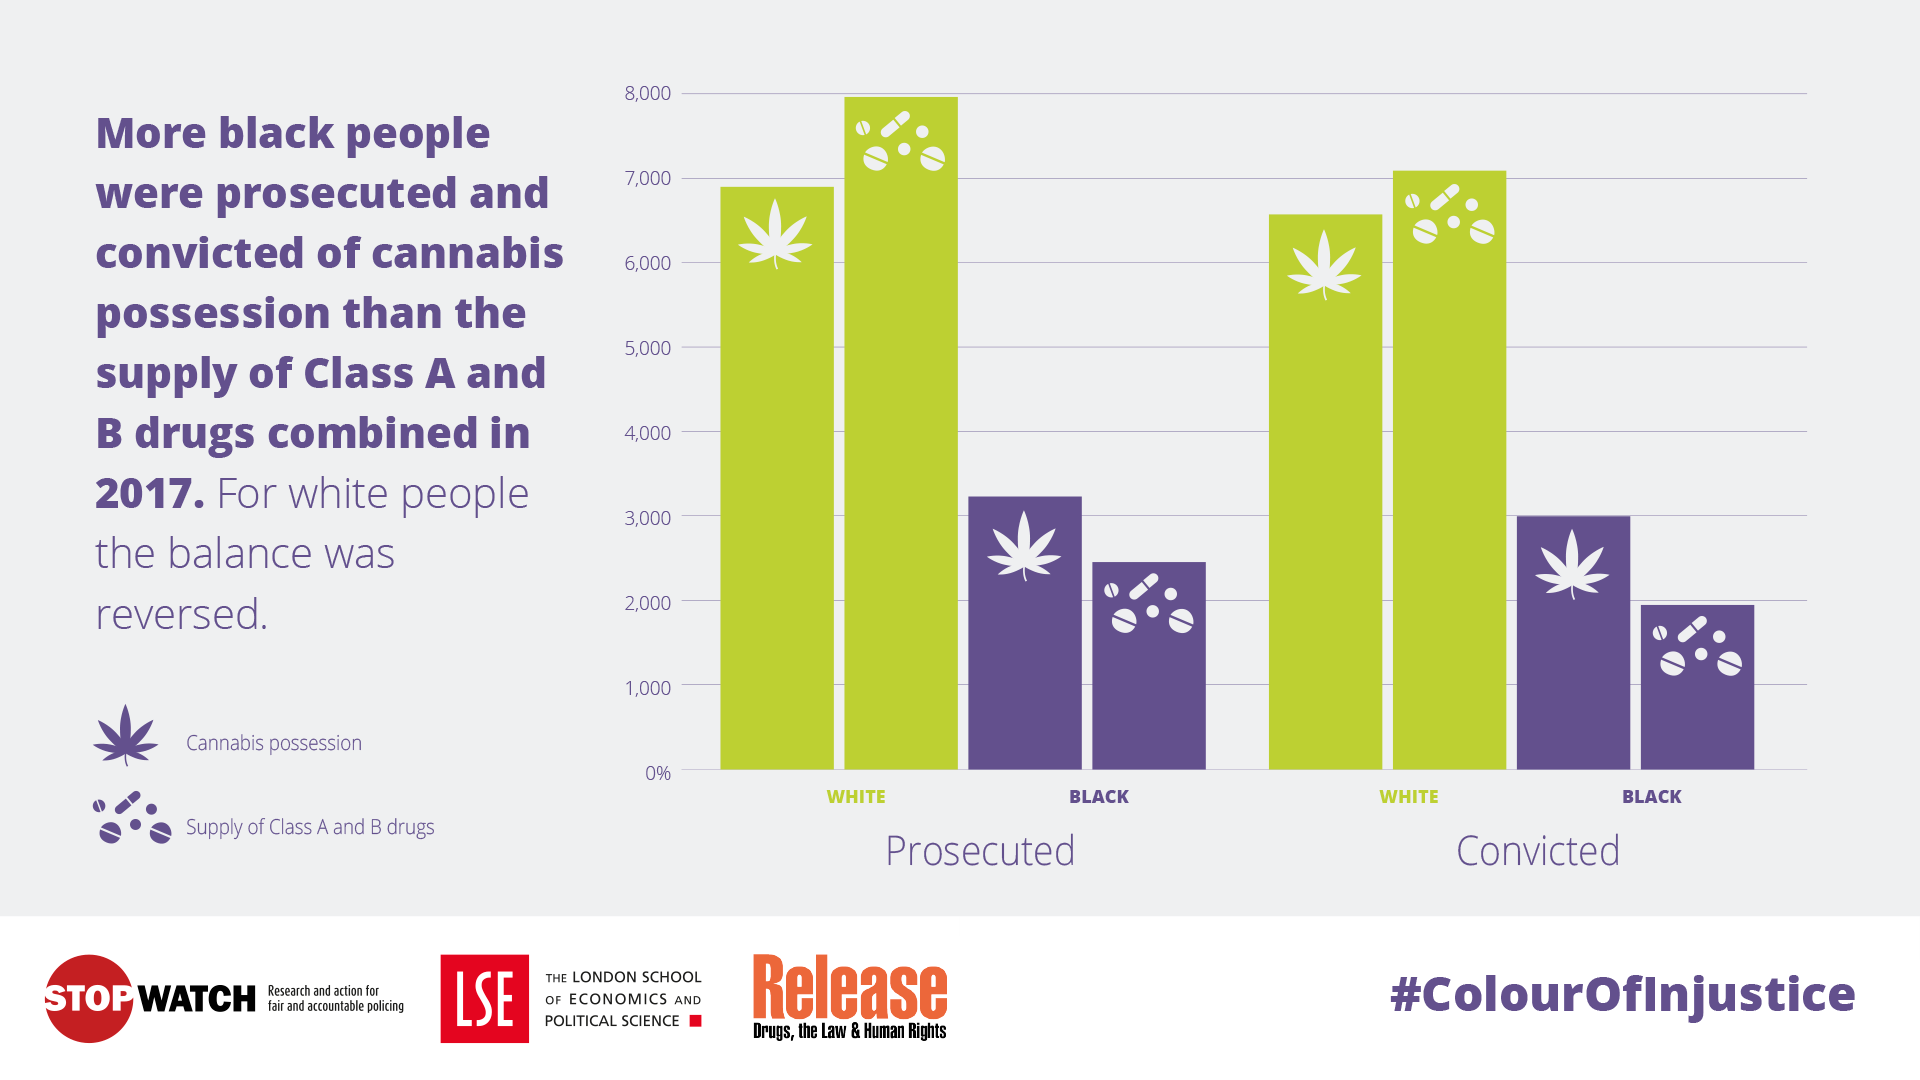 More black people were prosecuted and convicted of cannabis possession than the supply of Class A and B drugs combined in 2017. For white people the balance was reversed.